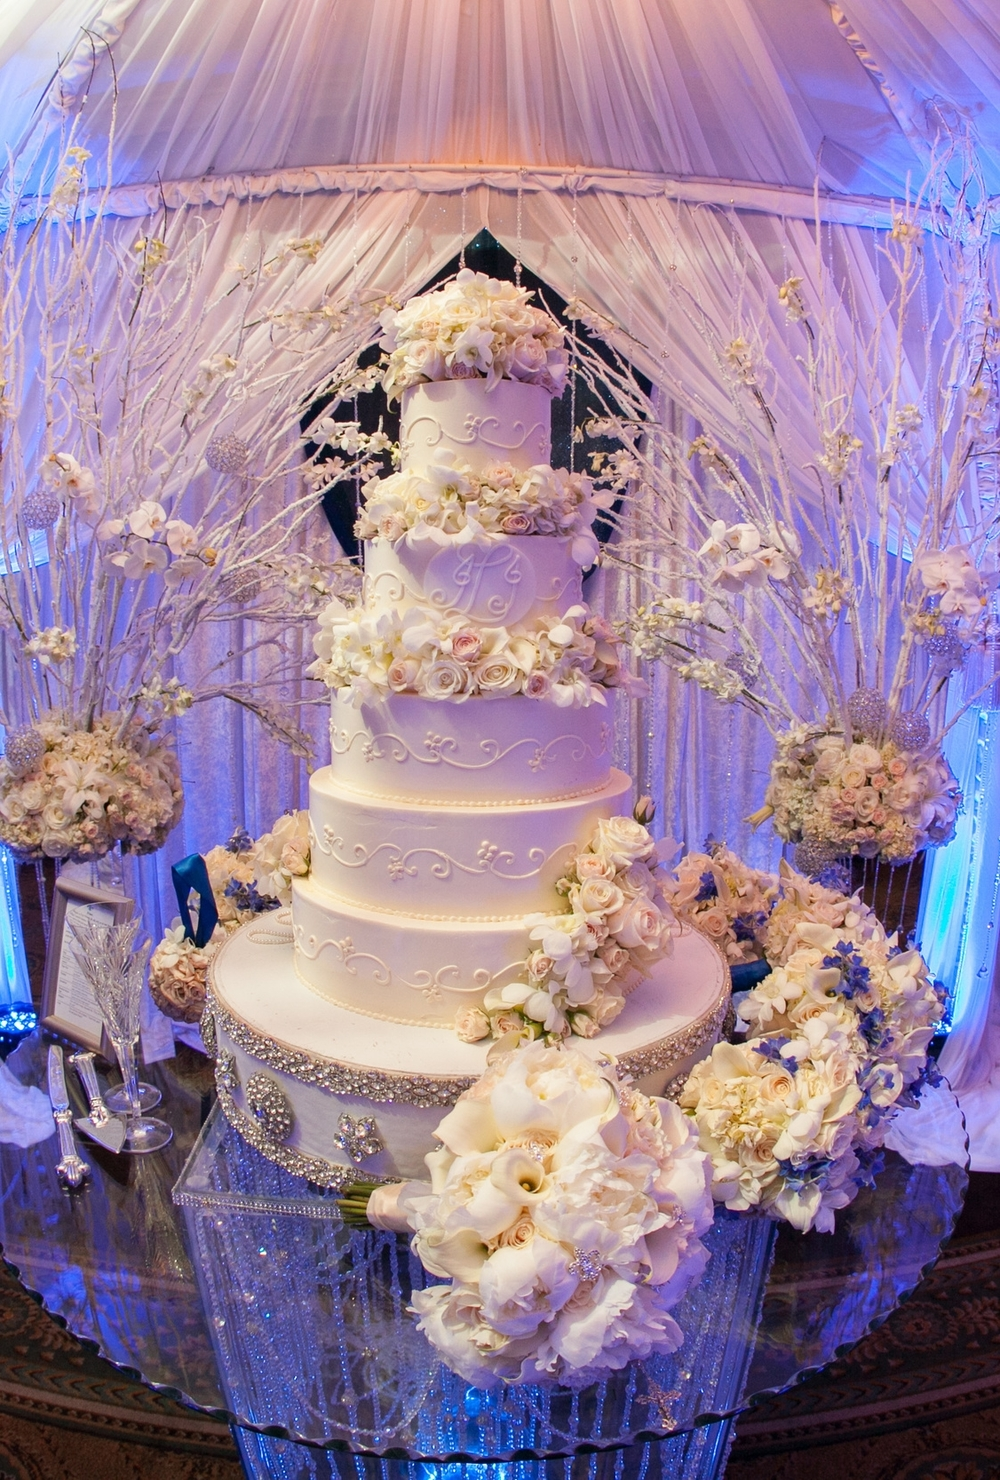 custom-wedding-cake-with-monogram.jpg